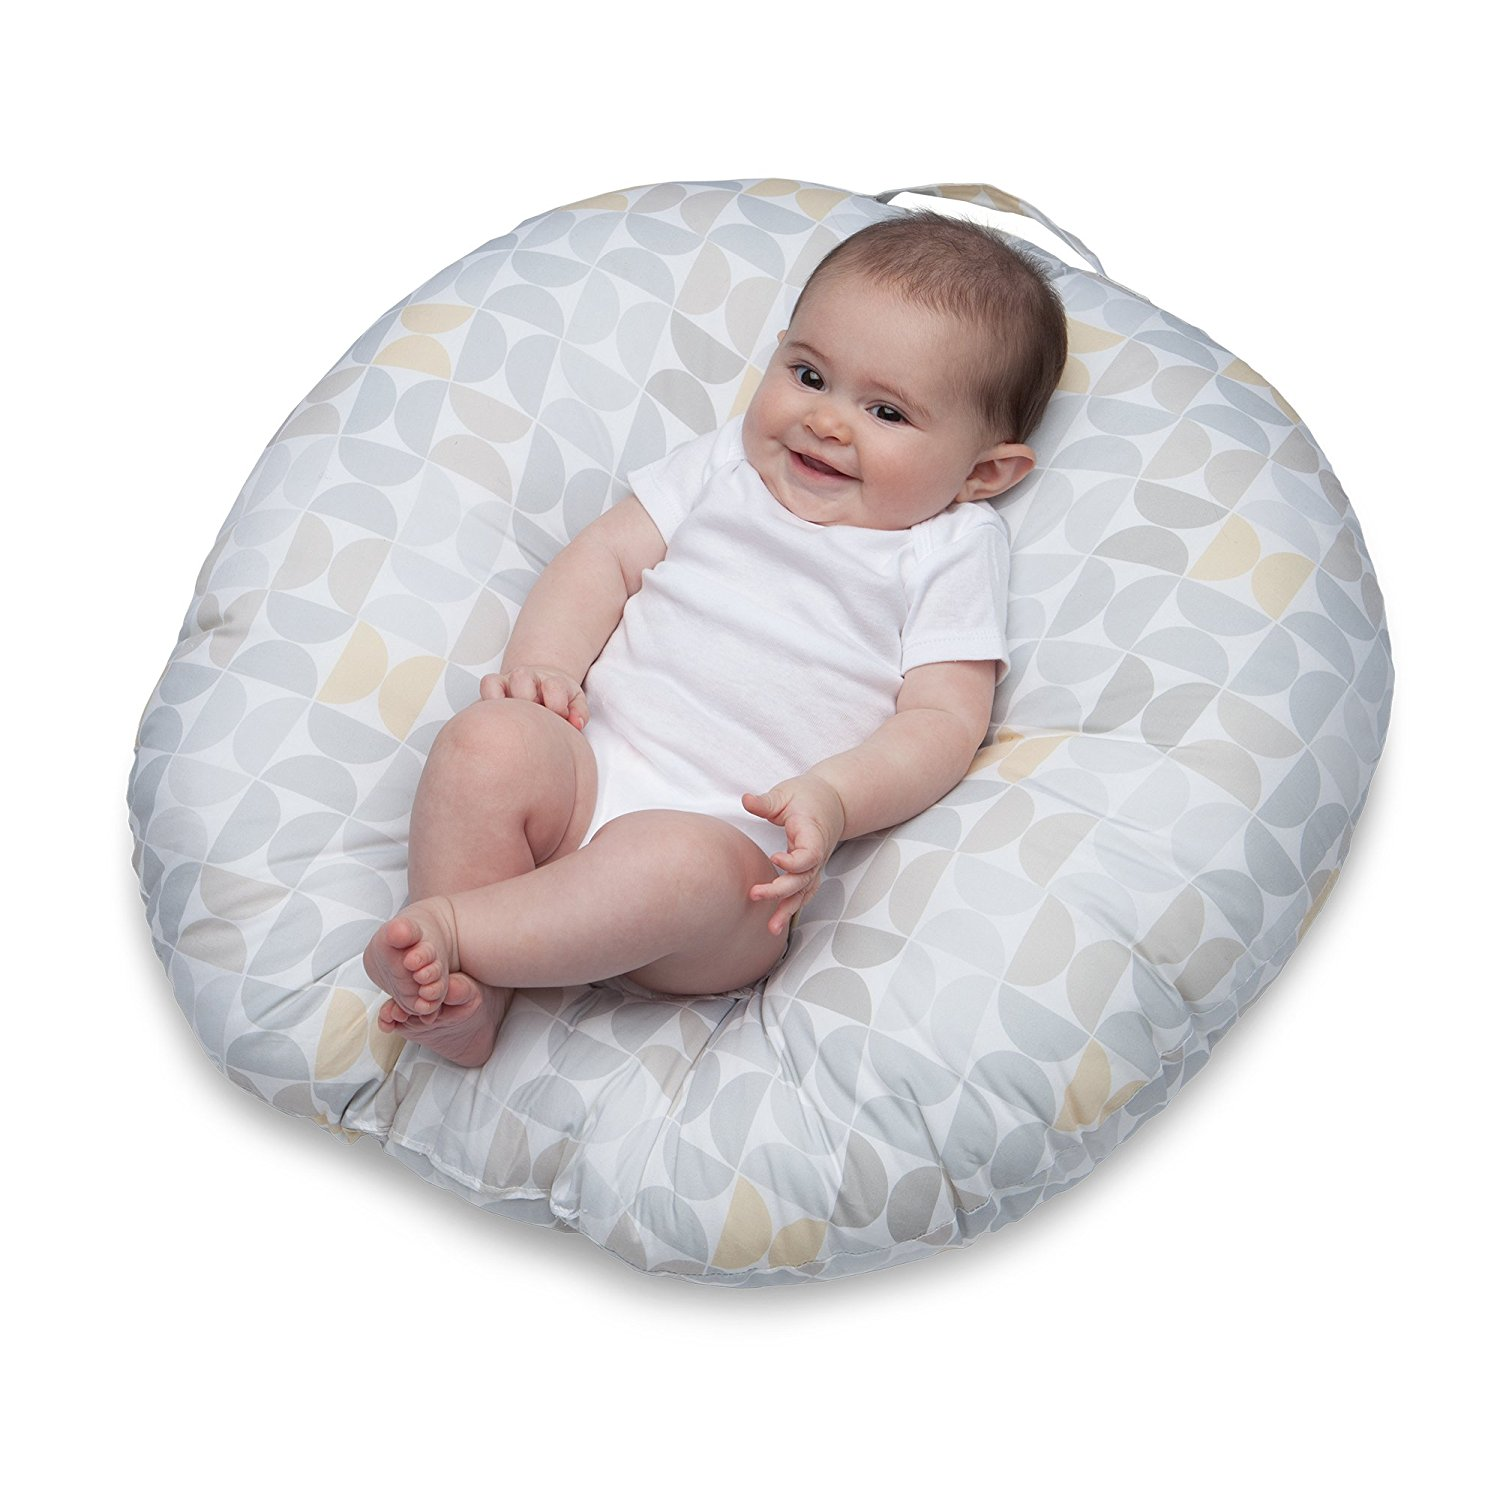 boppy baby chair green marbles x3 wheelchair cheap lounger find deals on line at get quotations newborn gray taupe propeller